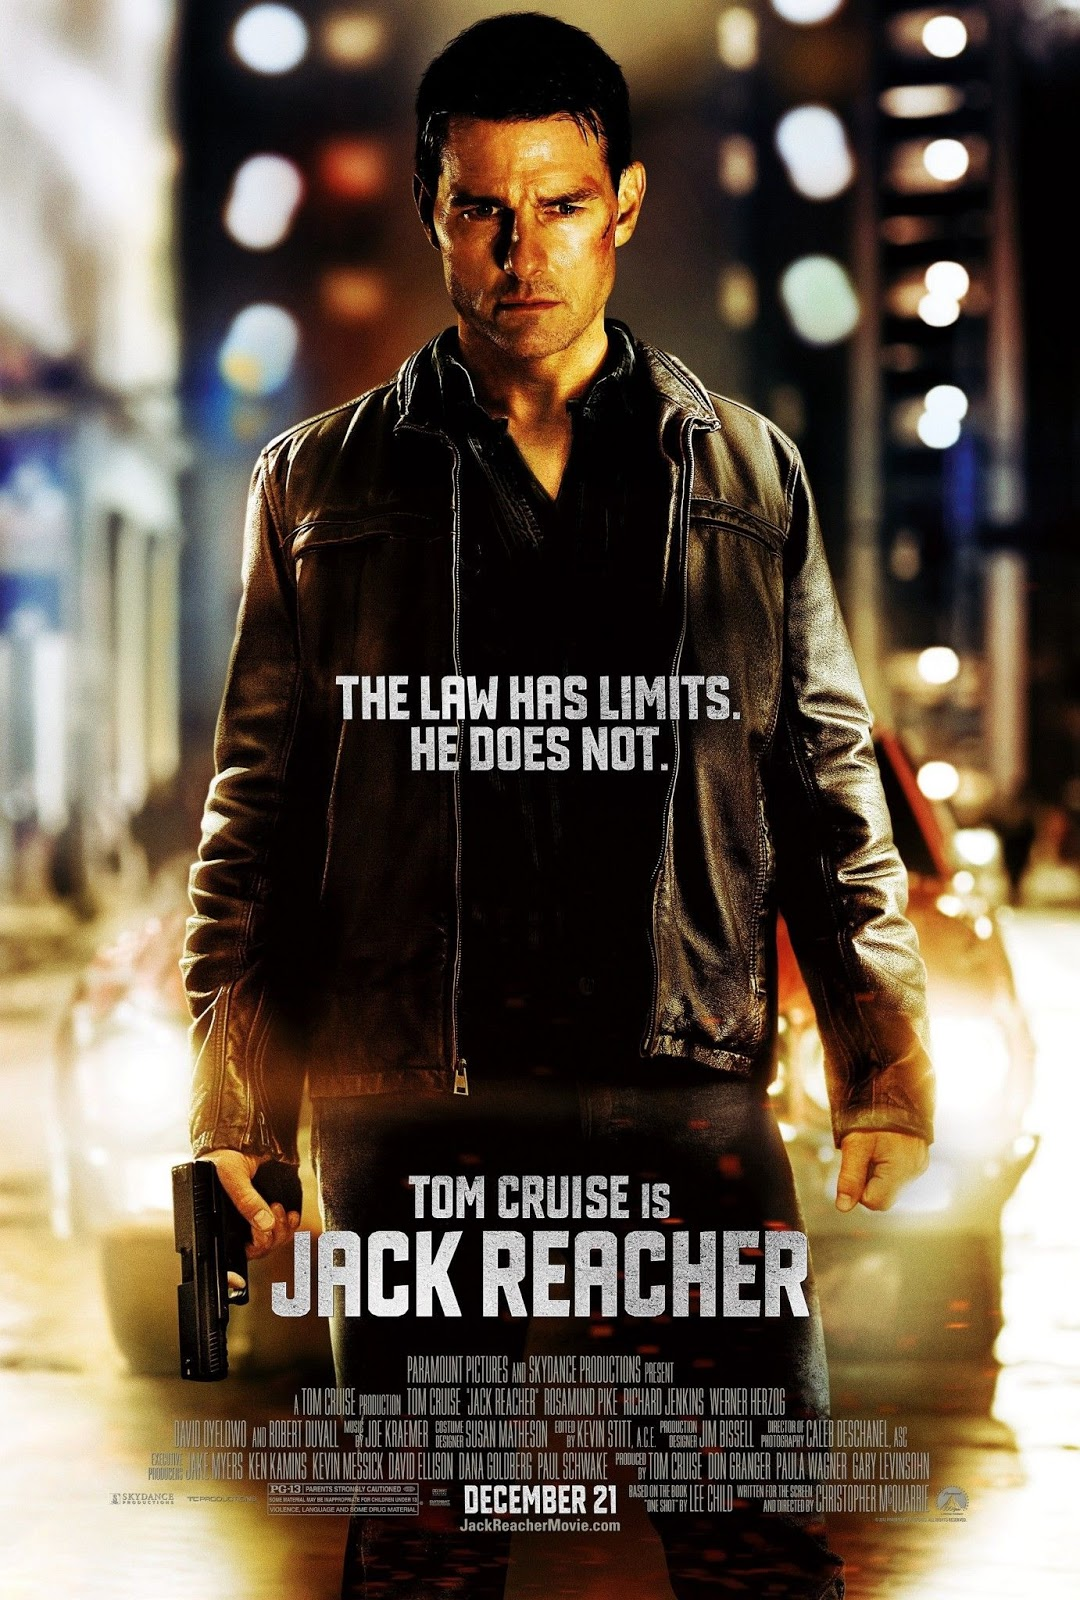 JACK REACHER (2012) MOVIE TAMIL DUBBED HD